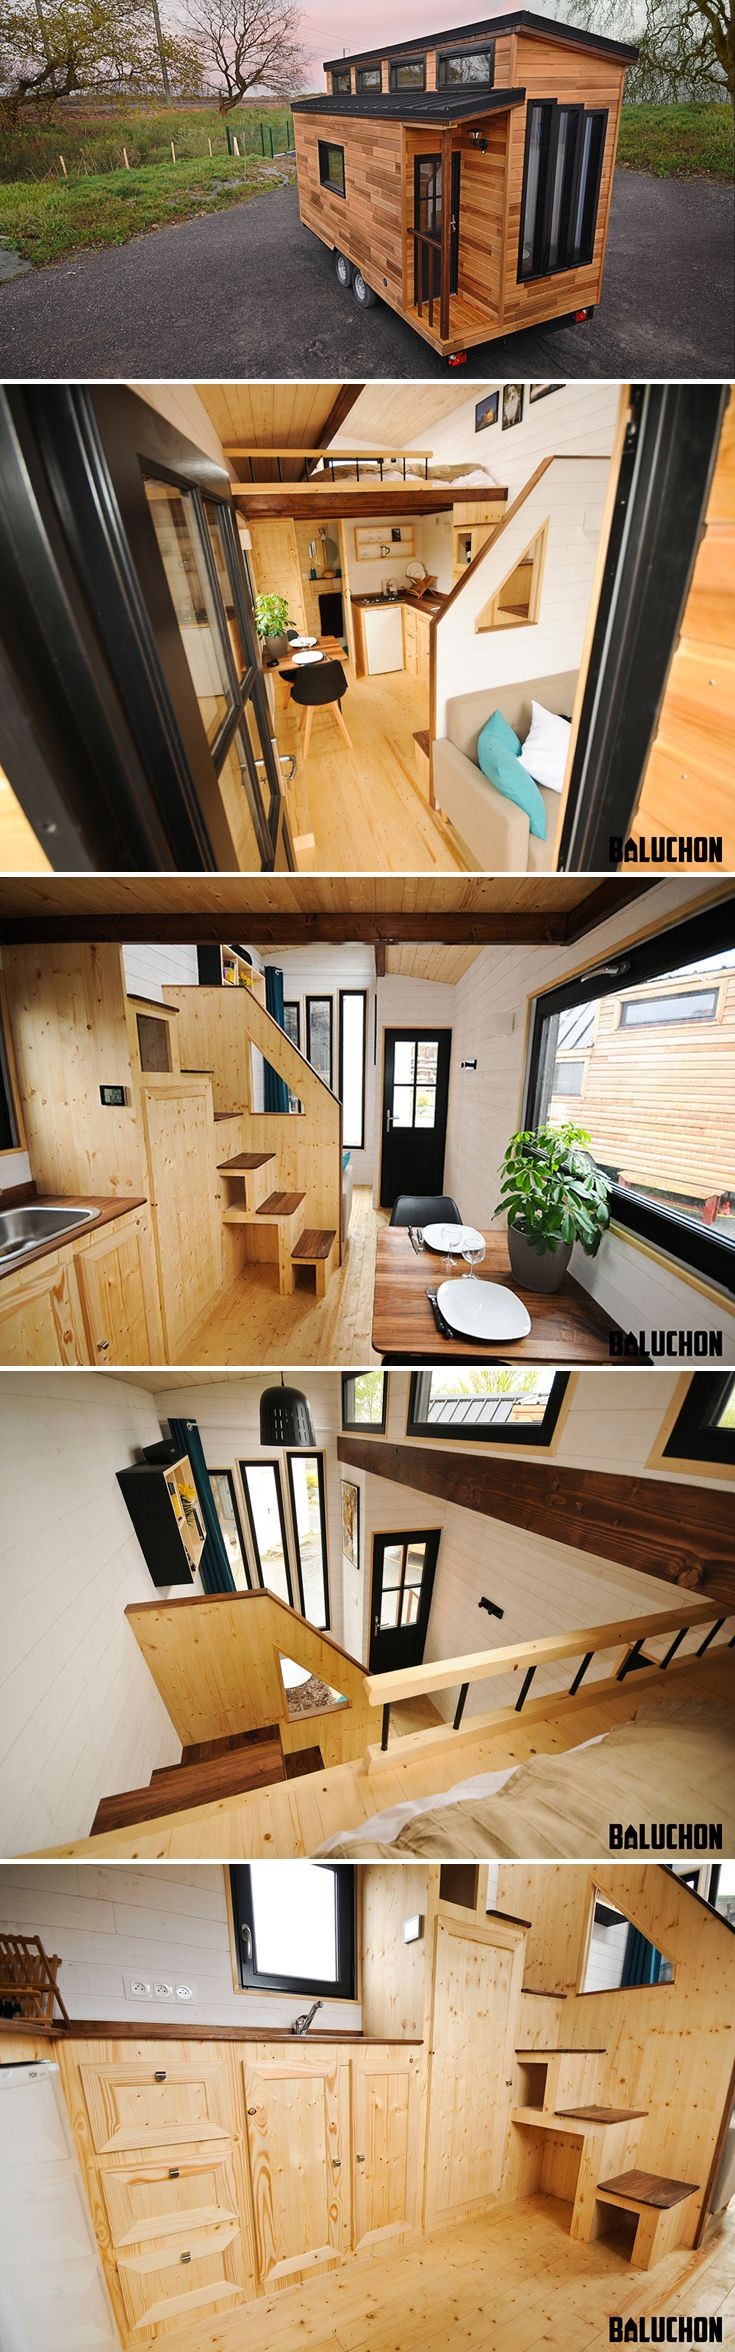 escapade by baluchon modern tiny house house building and nantes. Black Bedroom Furniture Sets. Home Design Ideas